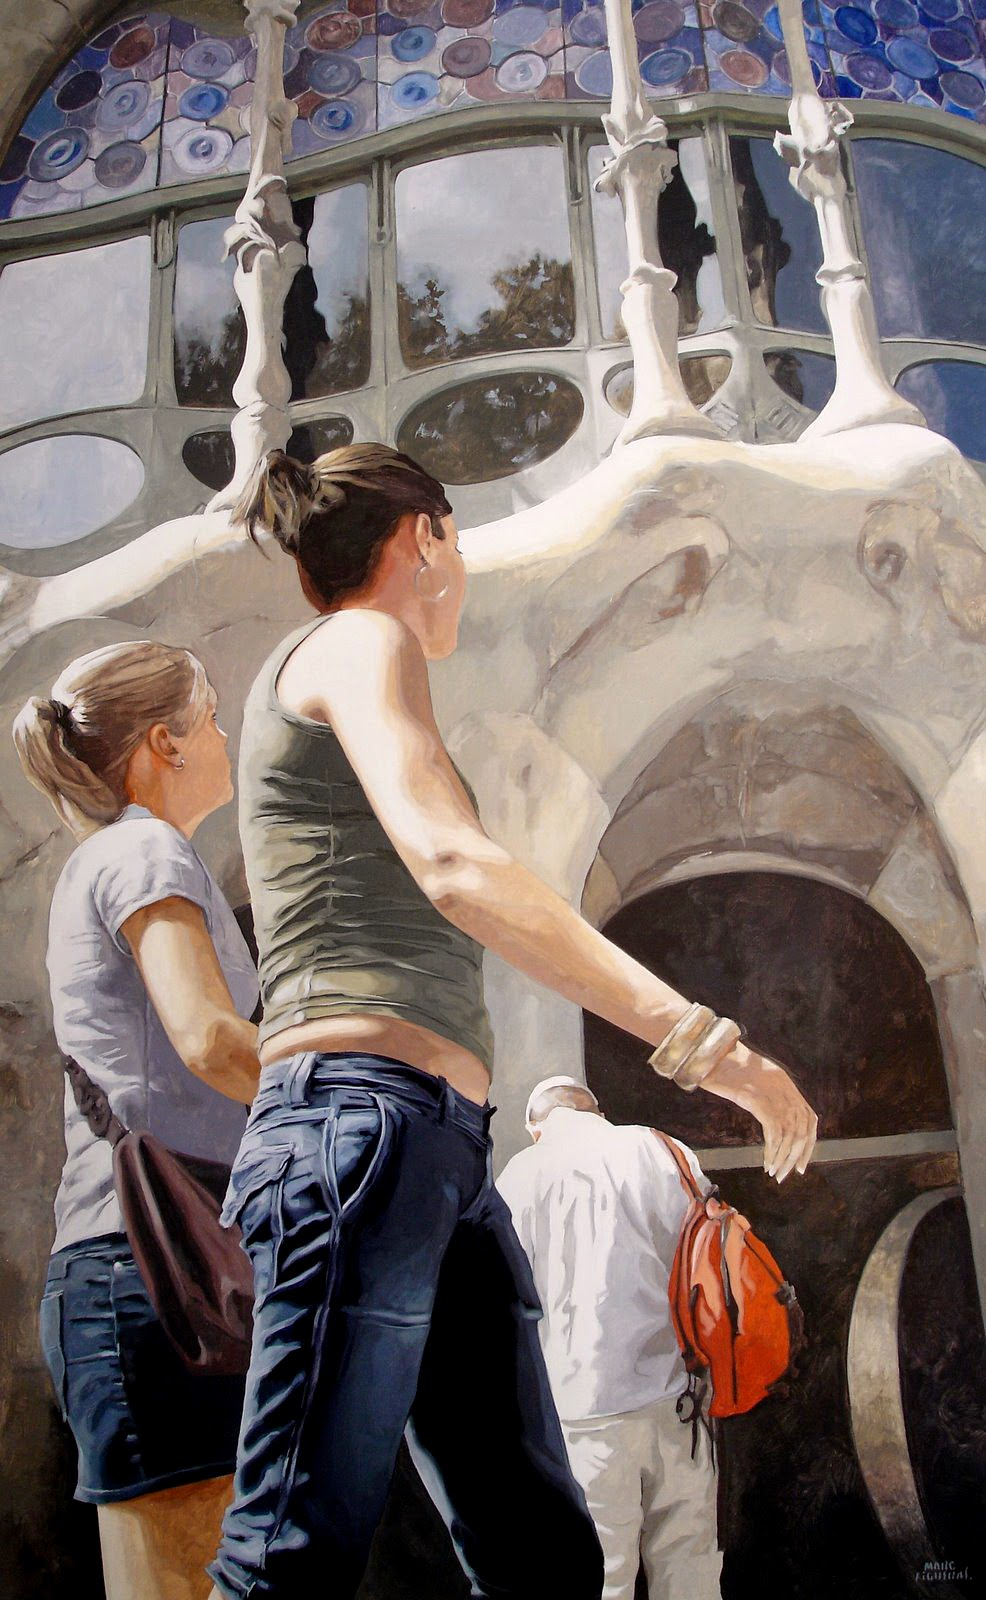 Hyper Realistic Girls Figure Painting By Marc Figueras (6)